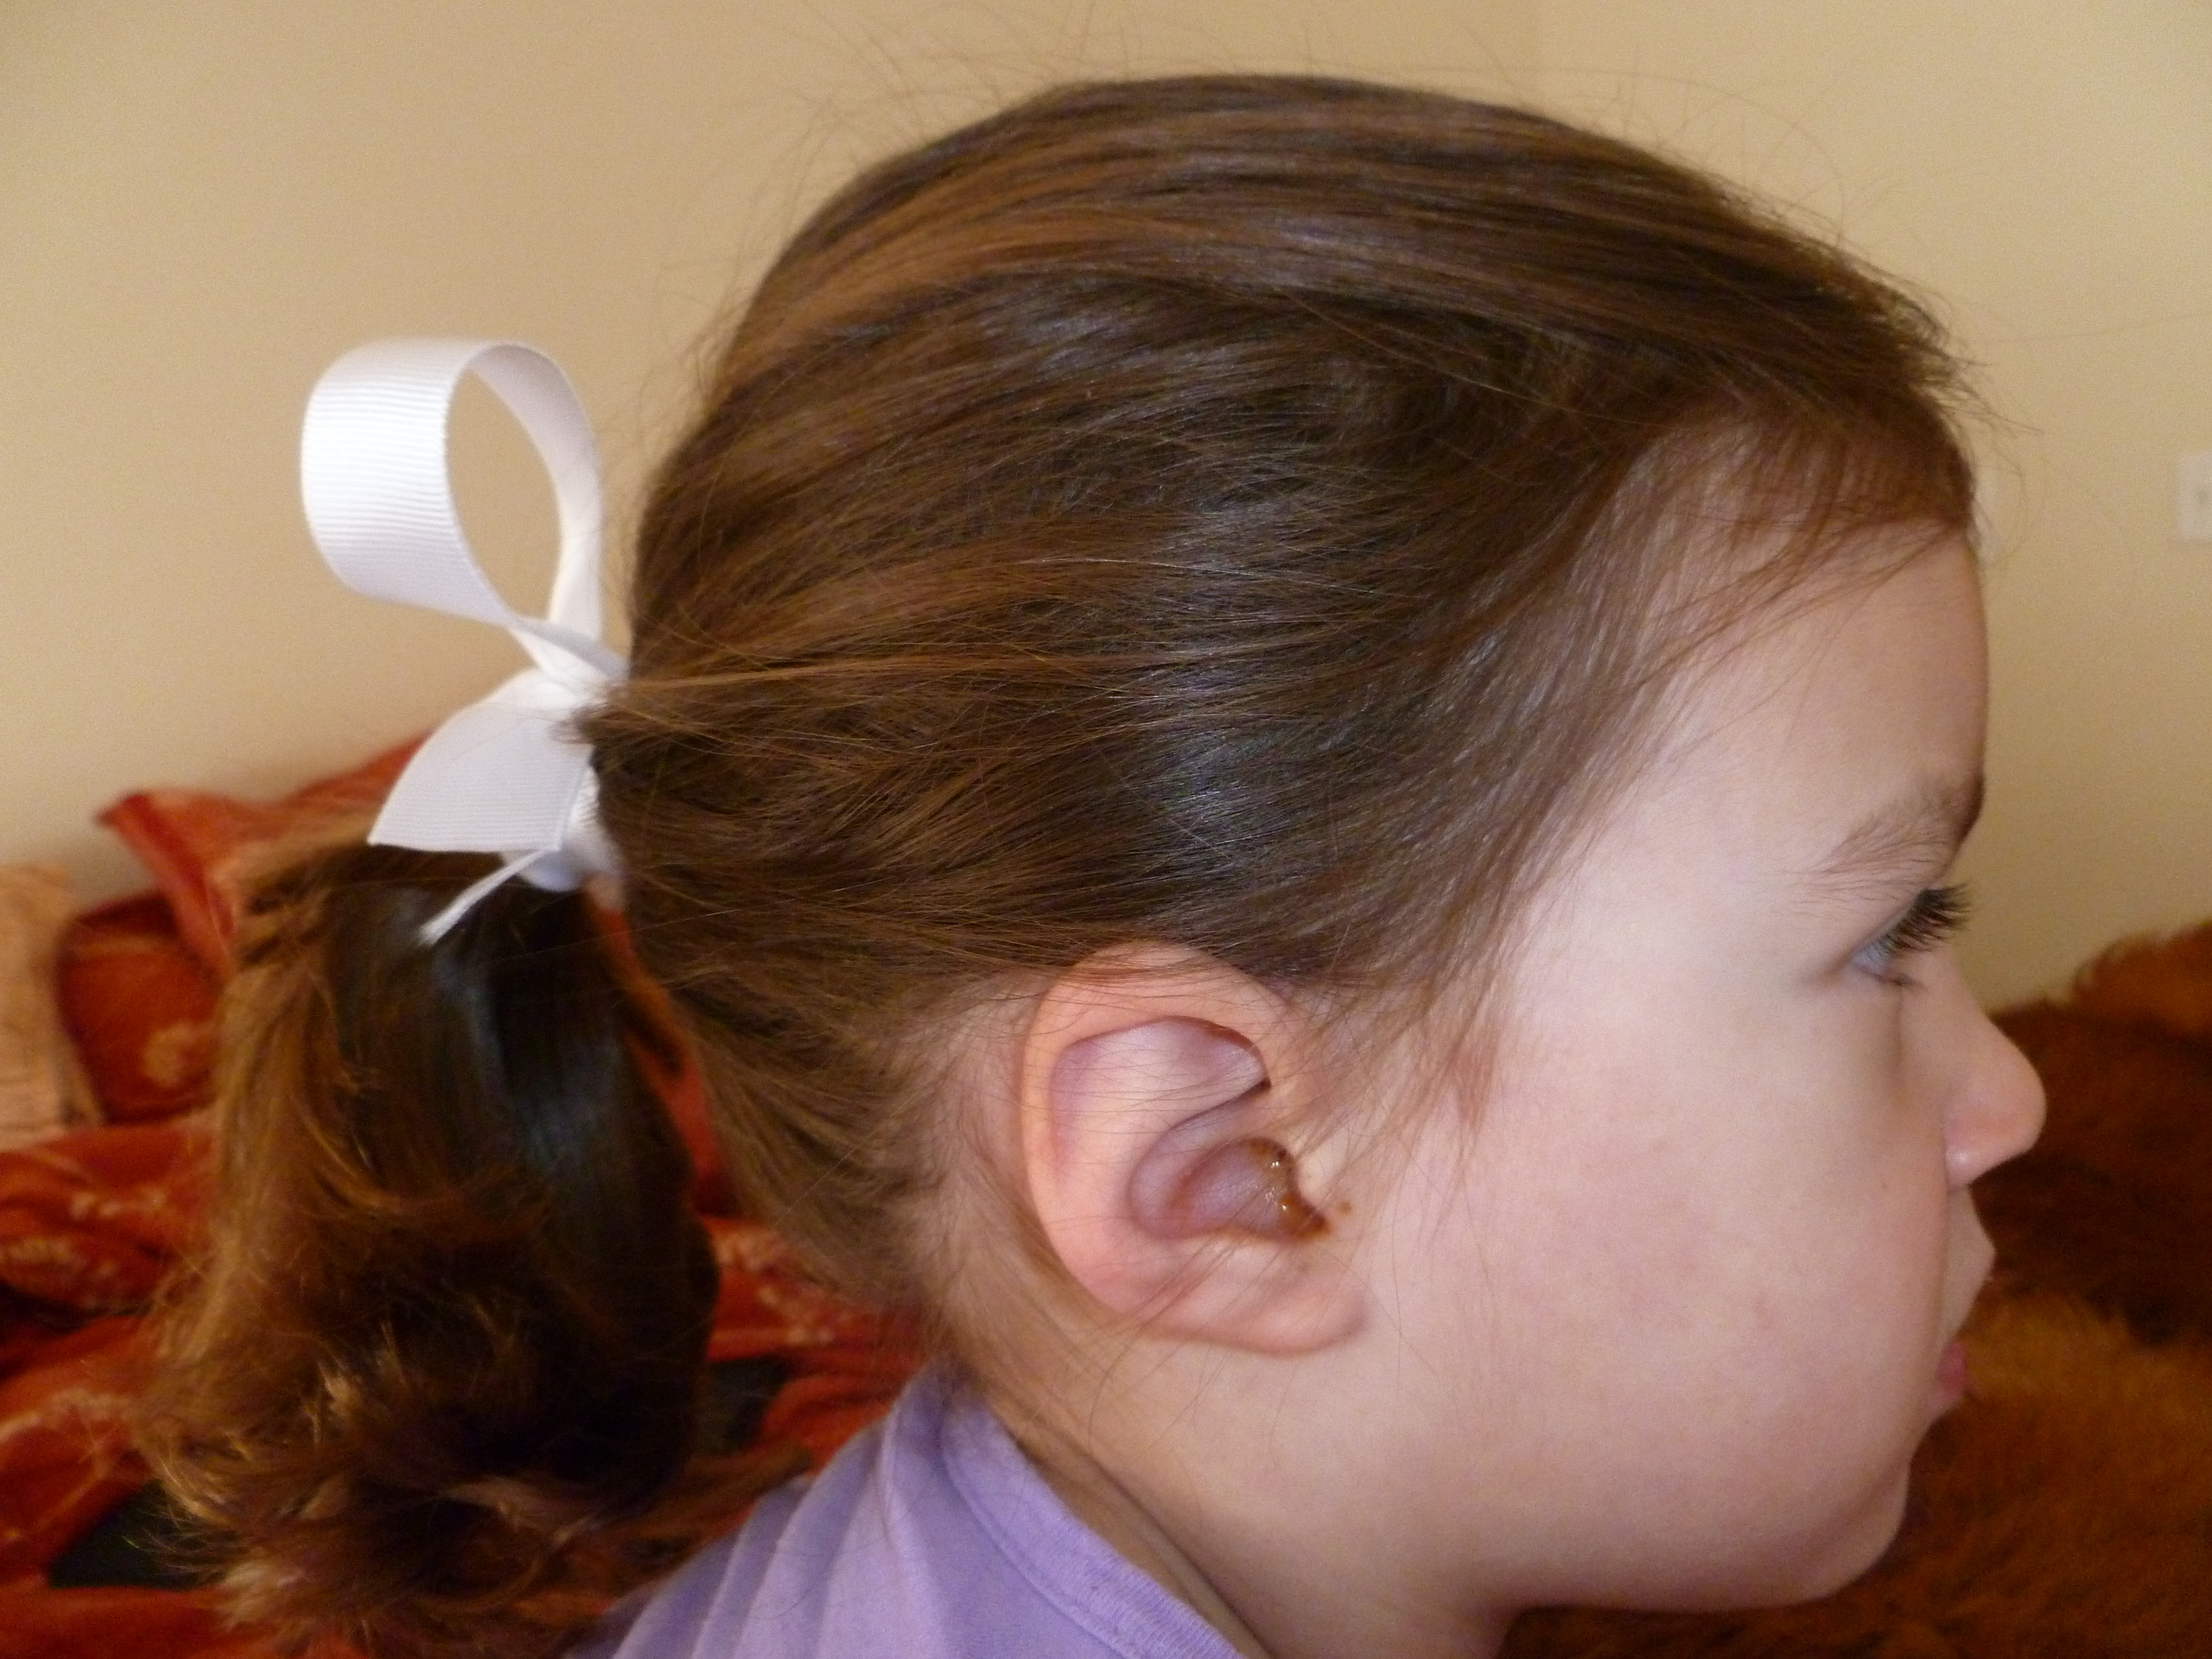 Tremendous Ponytails And Little Girls A Wife Loved Like The Church Natural Hairstyles Runnerswayorg